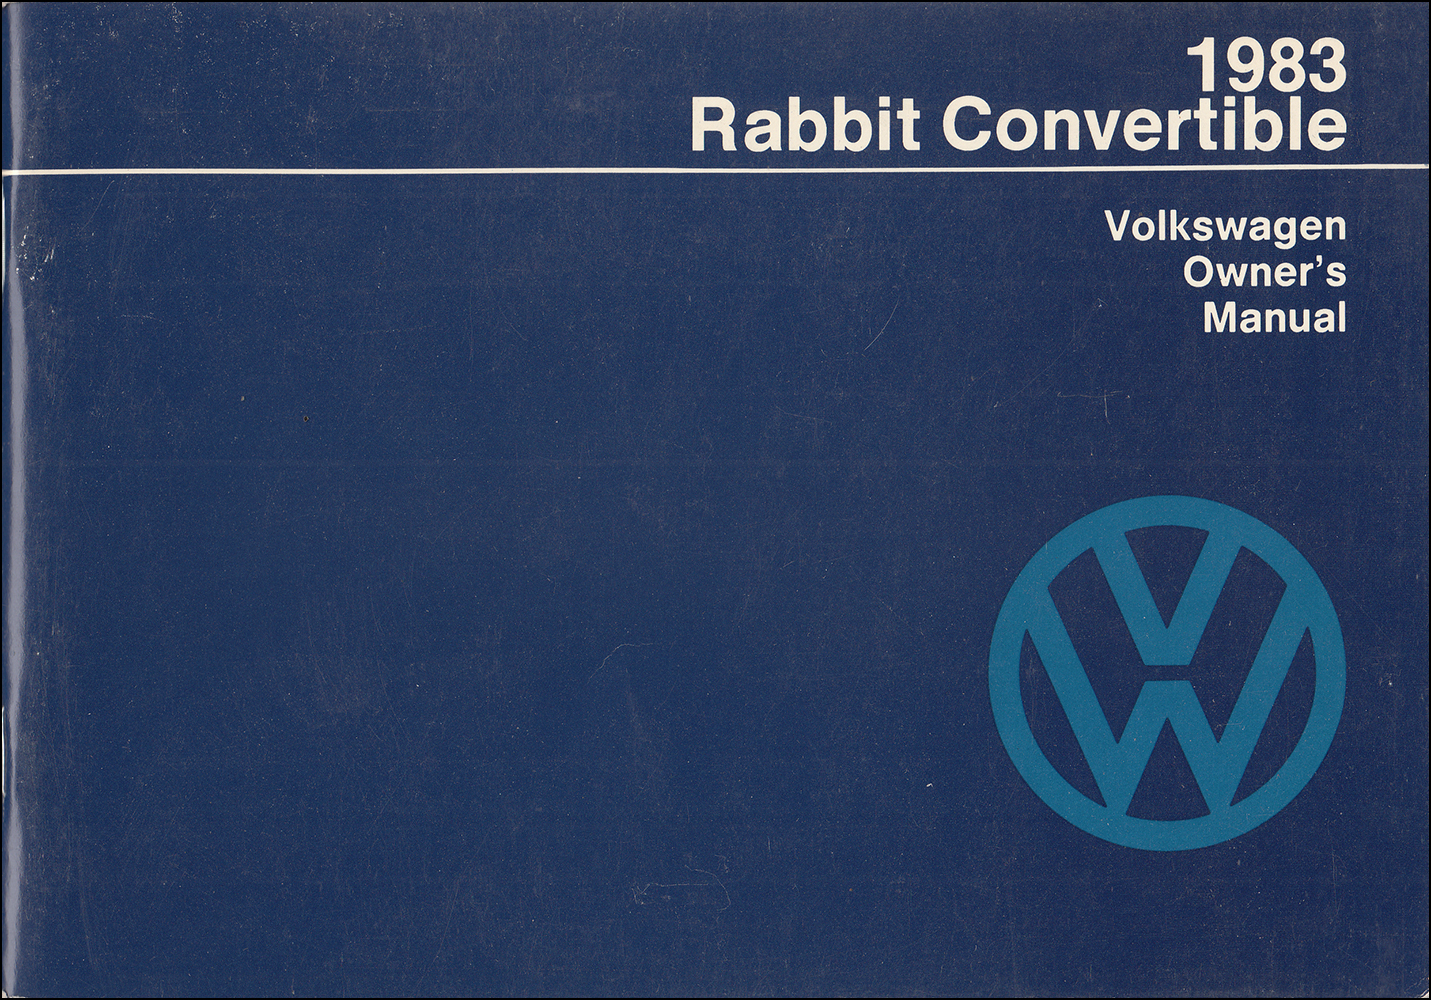 1983 Volkswagen Rabbit Convertible Owner's Manual Original